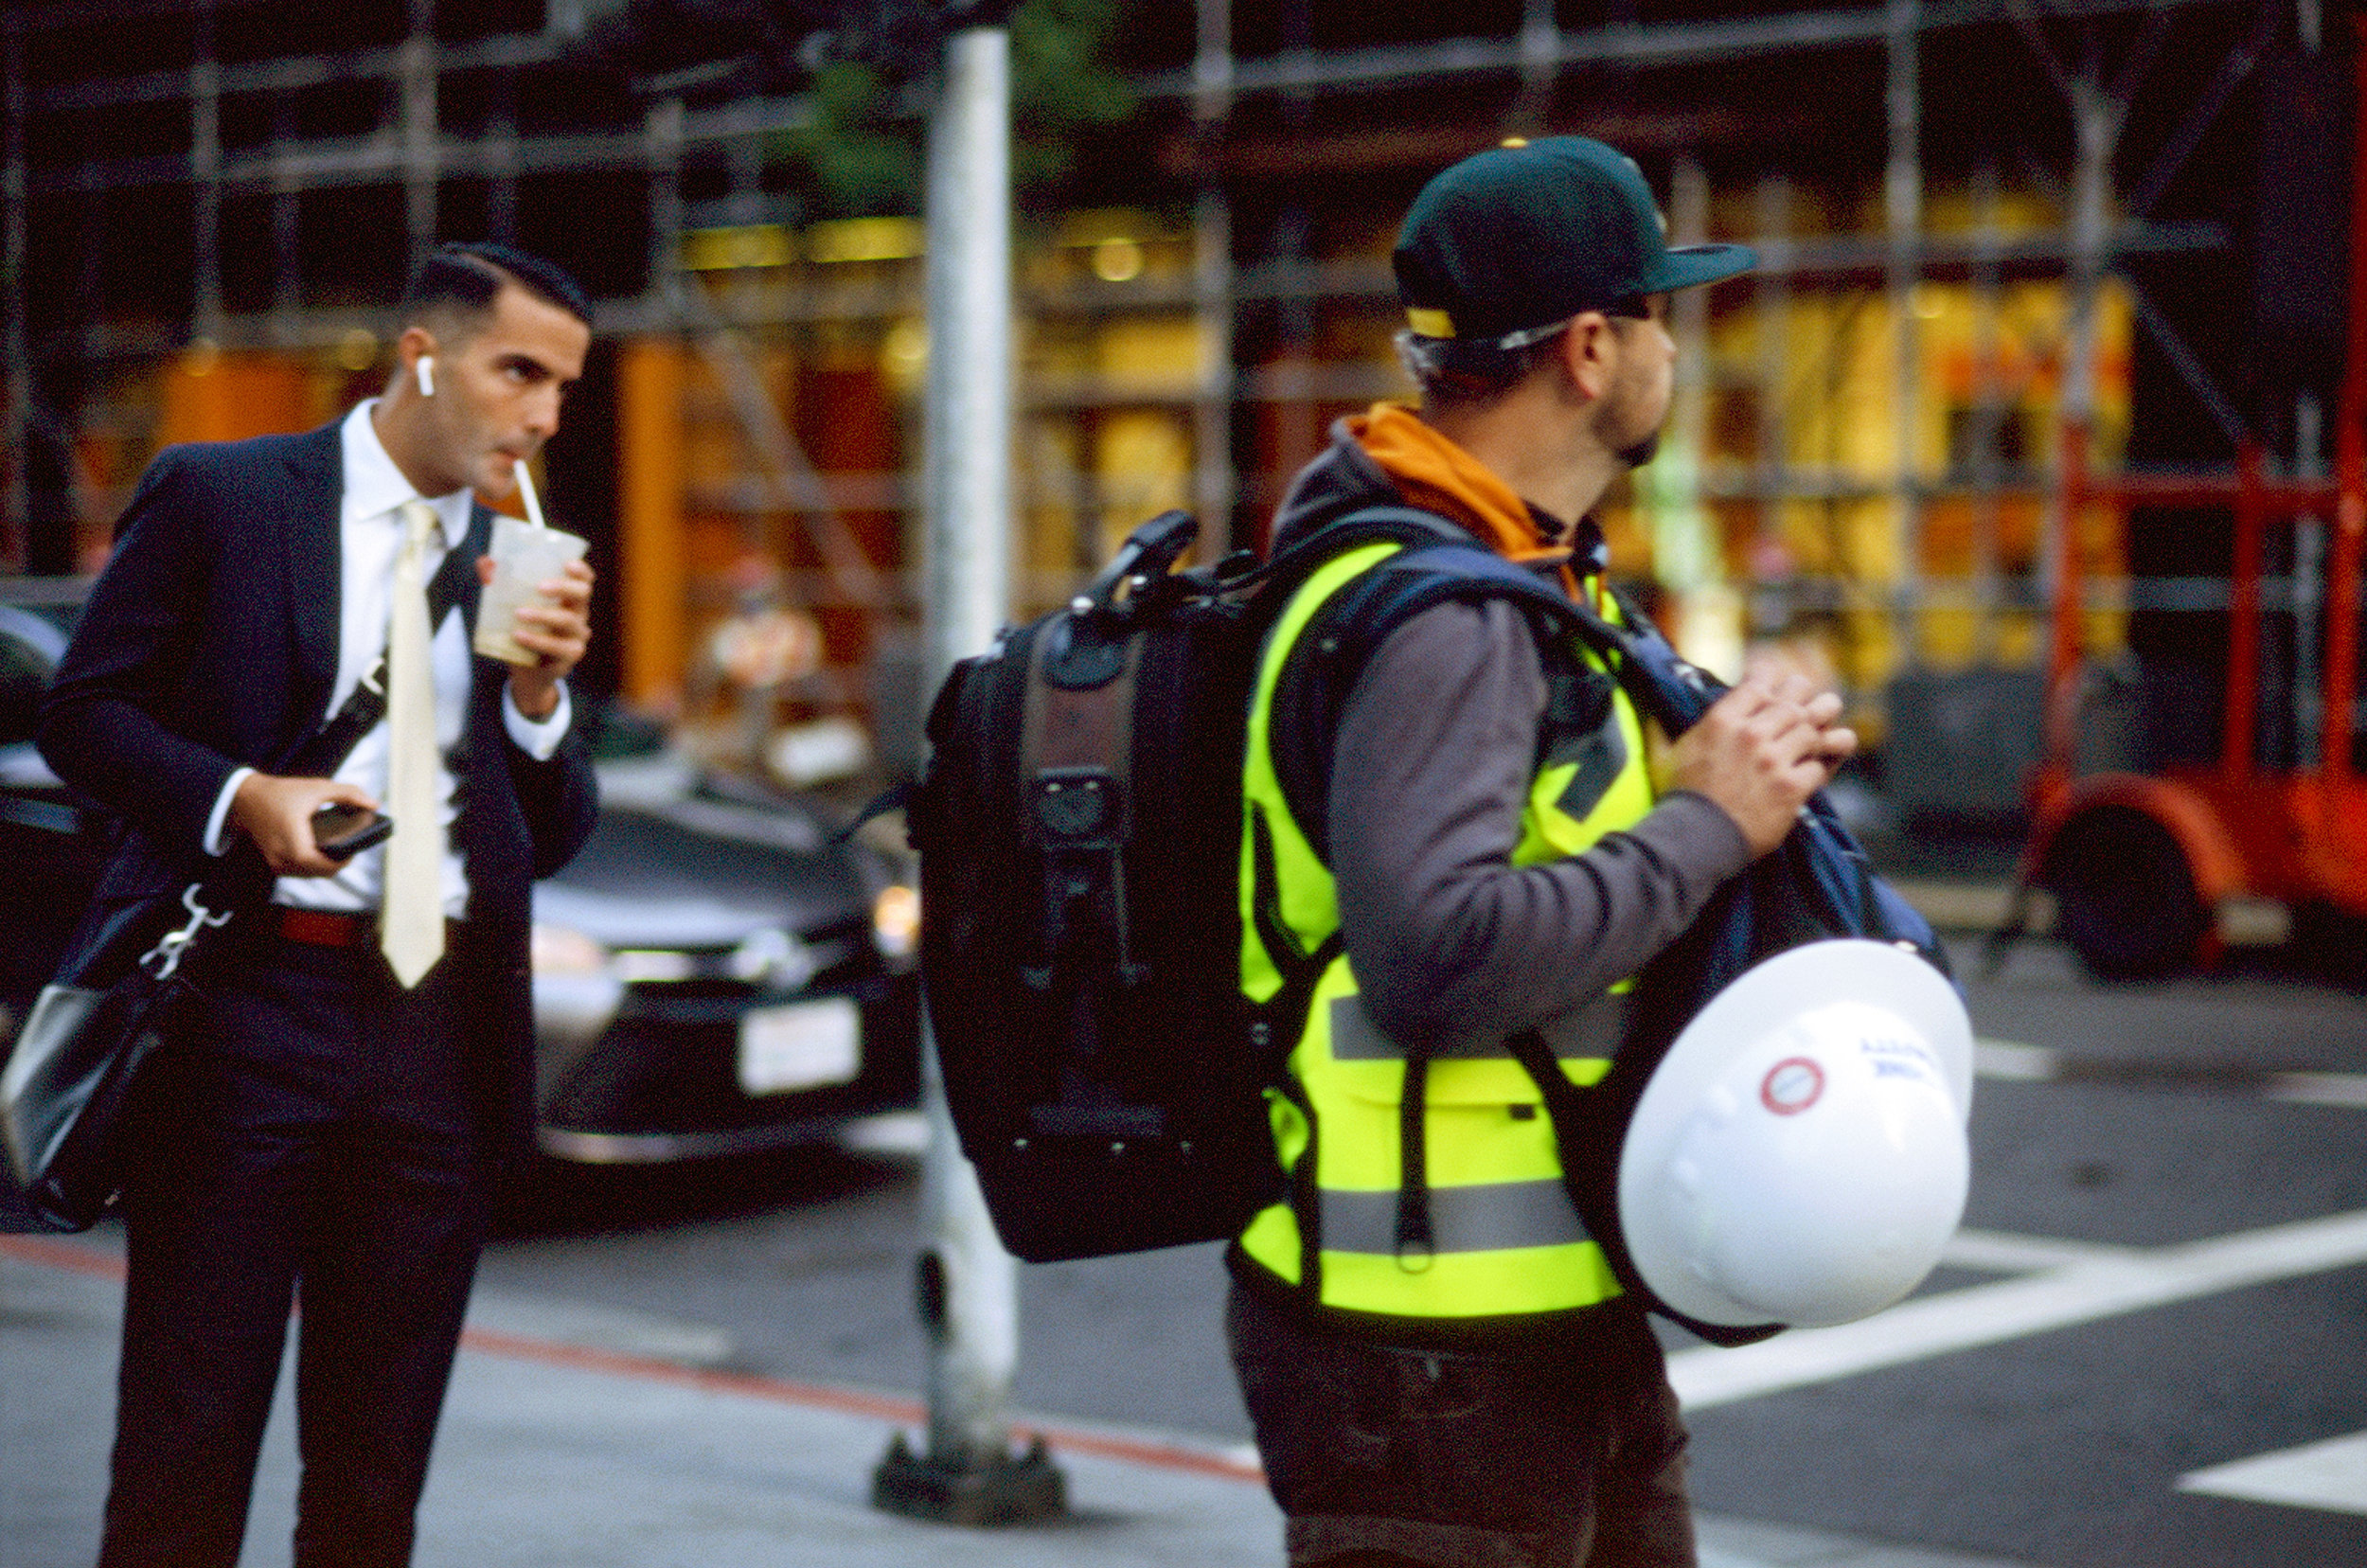 Construction and Businessman Downtown 2019.jpg